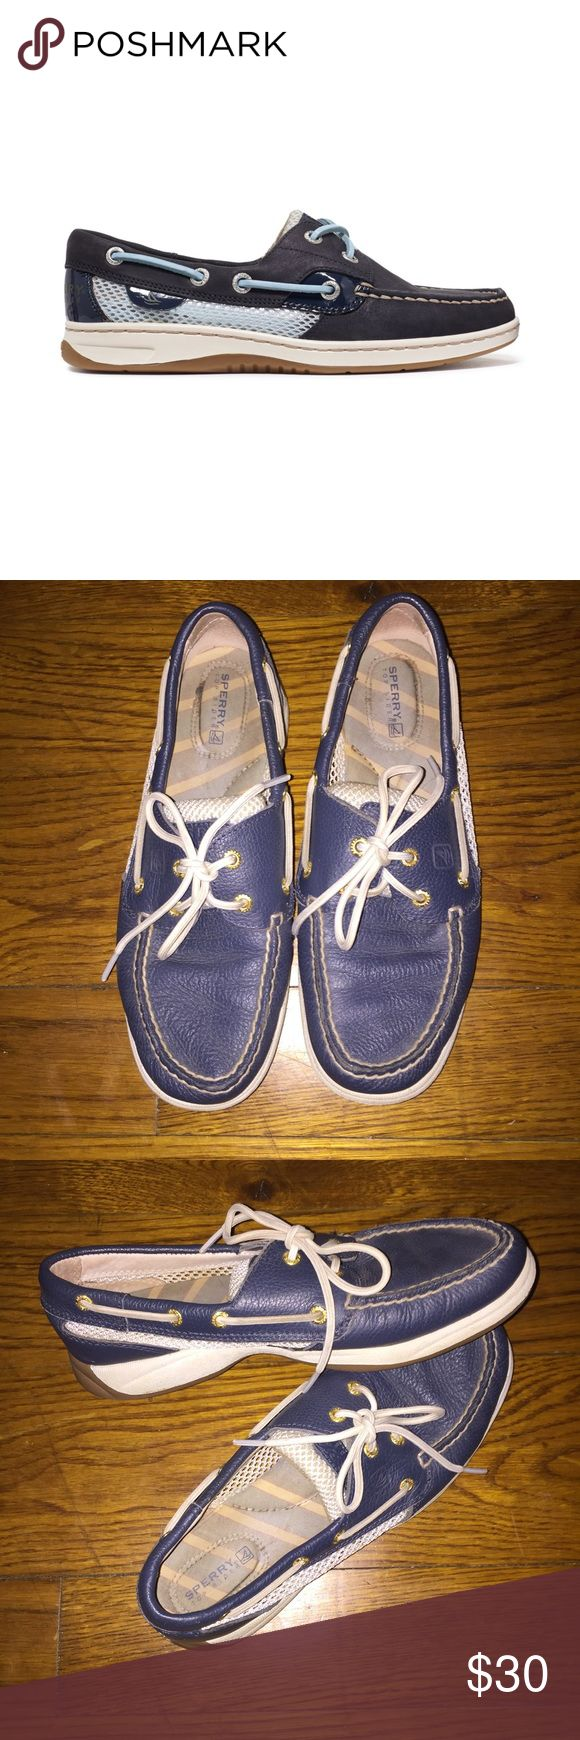 Final Sale❗️Sperry mocasines SPERRY TOP-SIDER WOMEN'S OPEN MESH.Price Firm. Sperry Top-Sider Shoes Moccasins